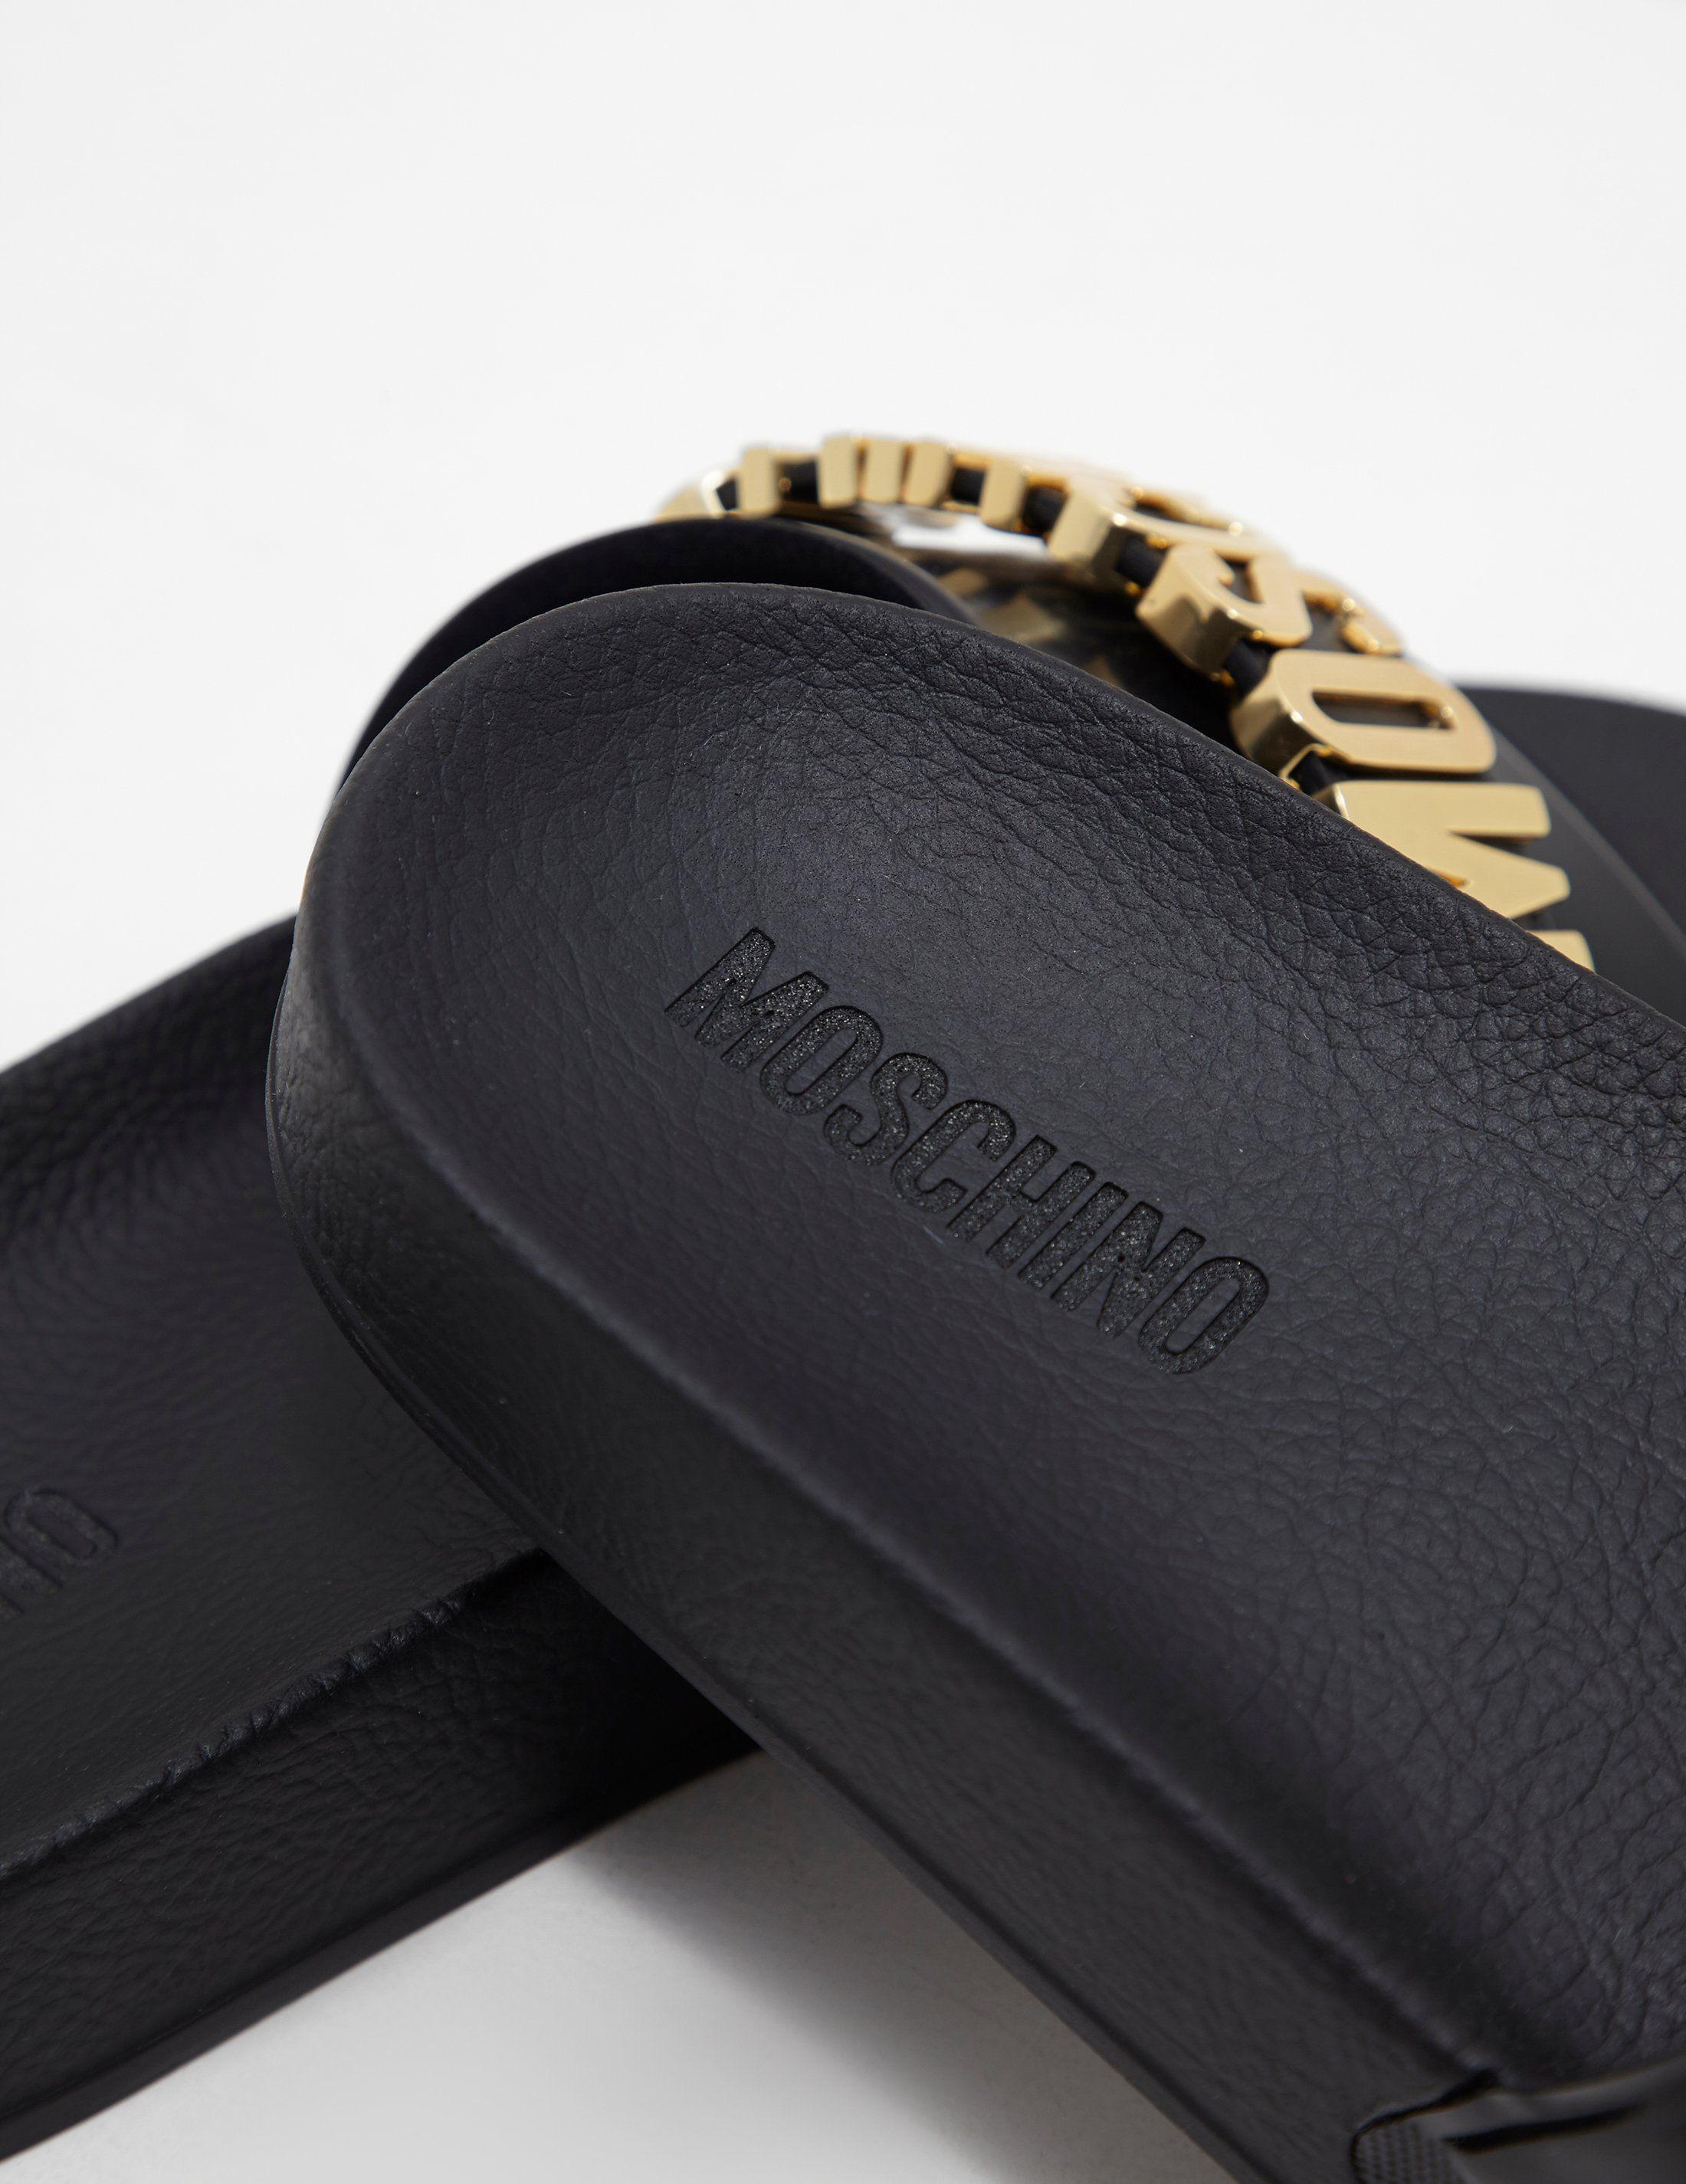 Moschino Logo Slides - Online Exclusive